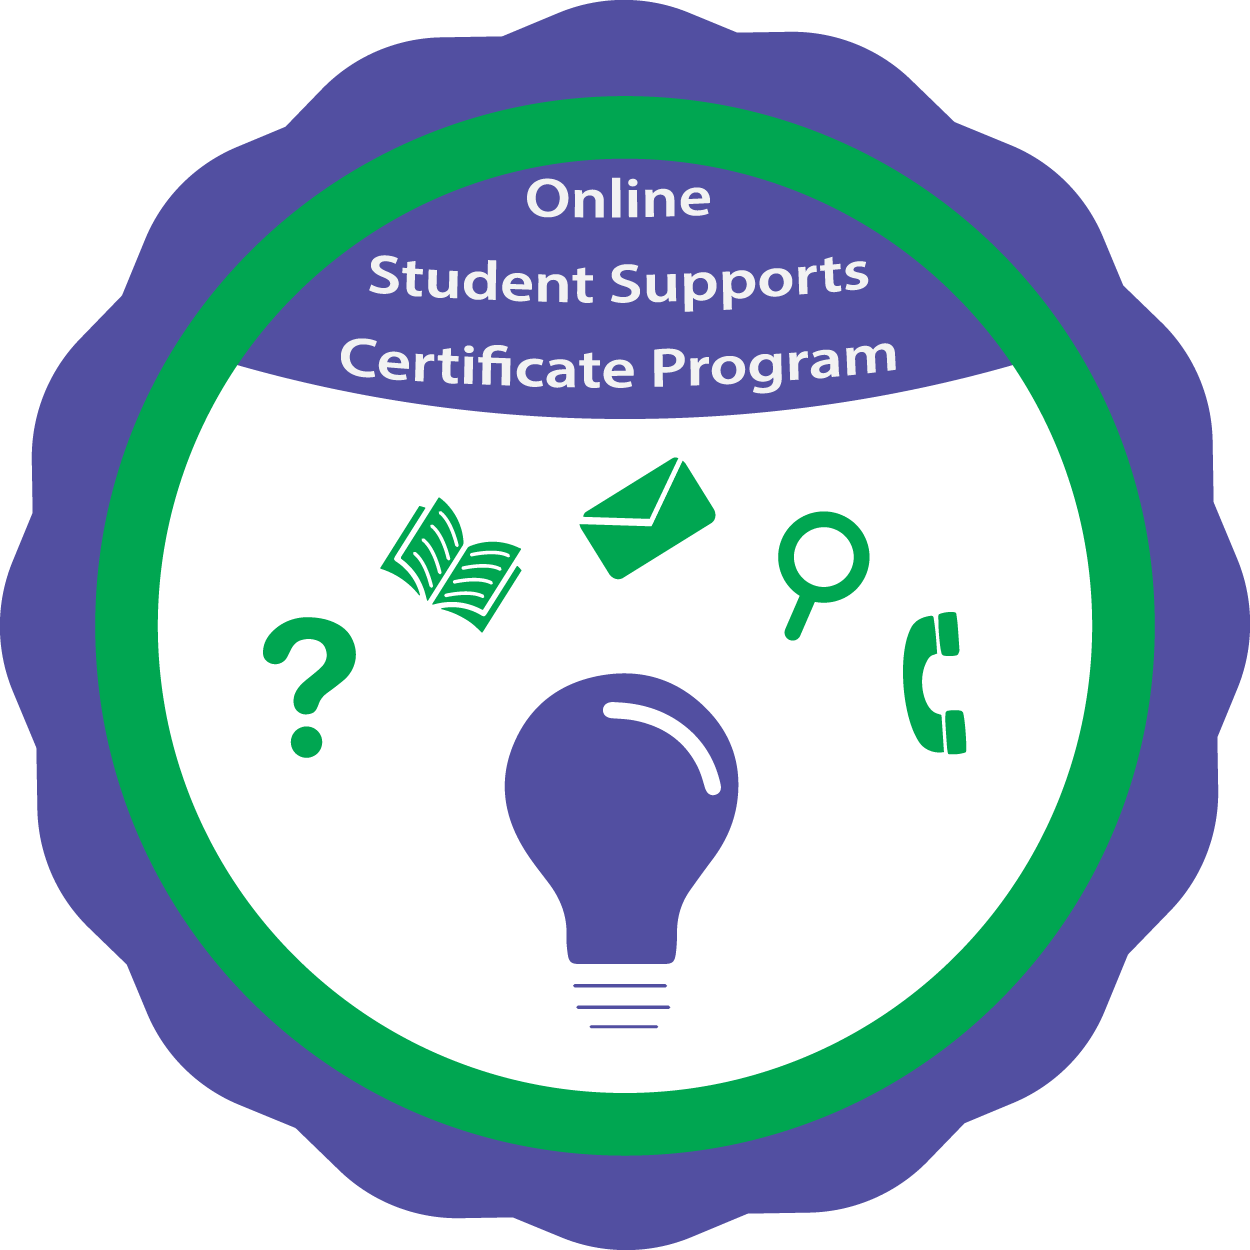 Online Student Supports Certificate Program